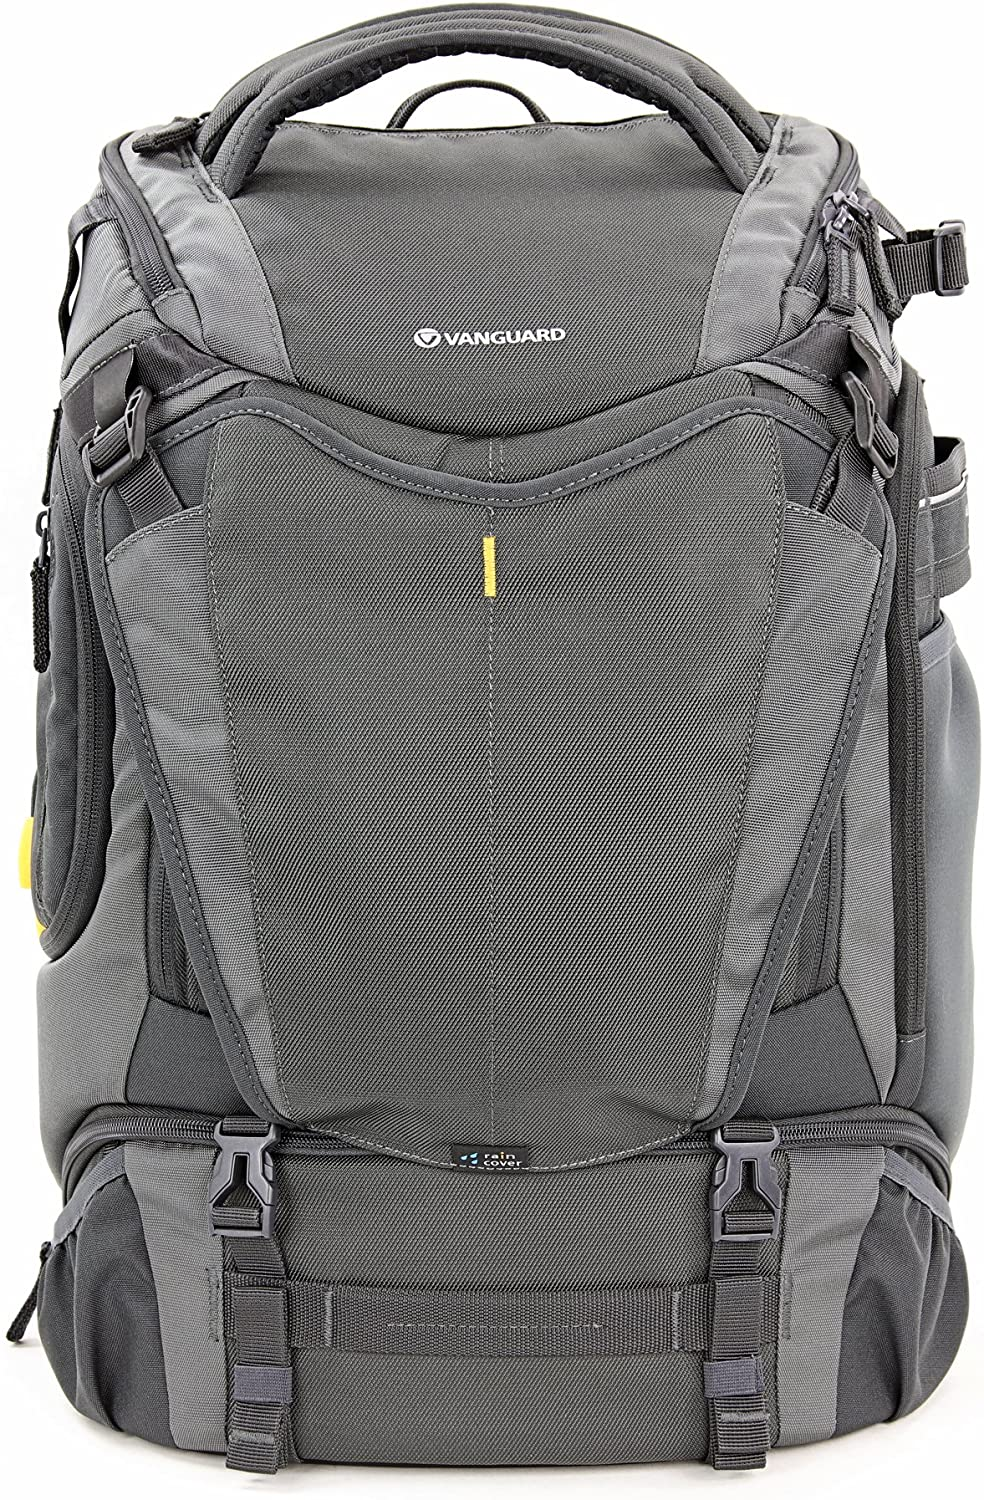 Nikon Drones DSLR Vanguard Alta Sky 51D Camera Backpack for Sony Canon Renewed